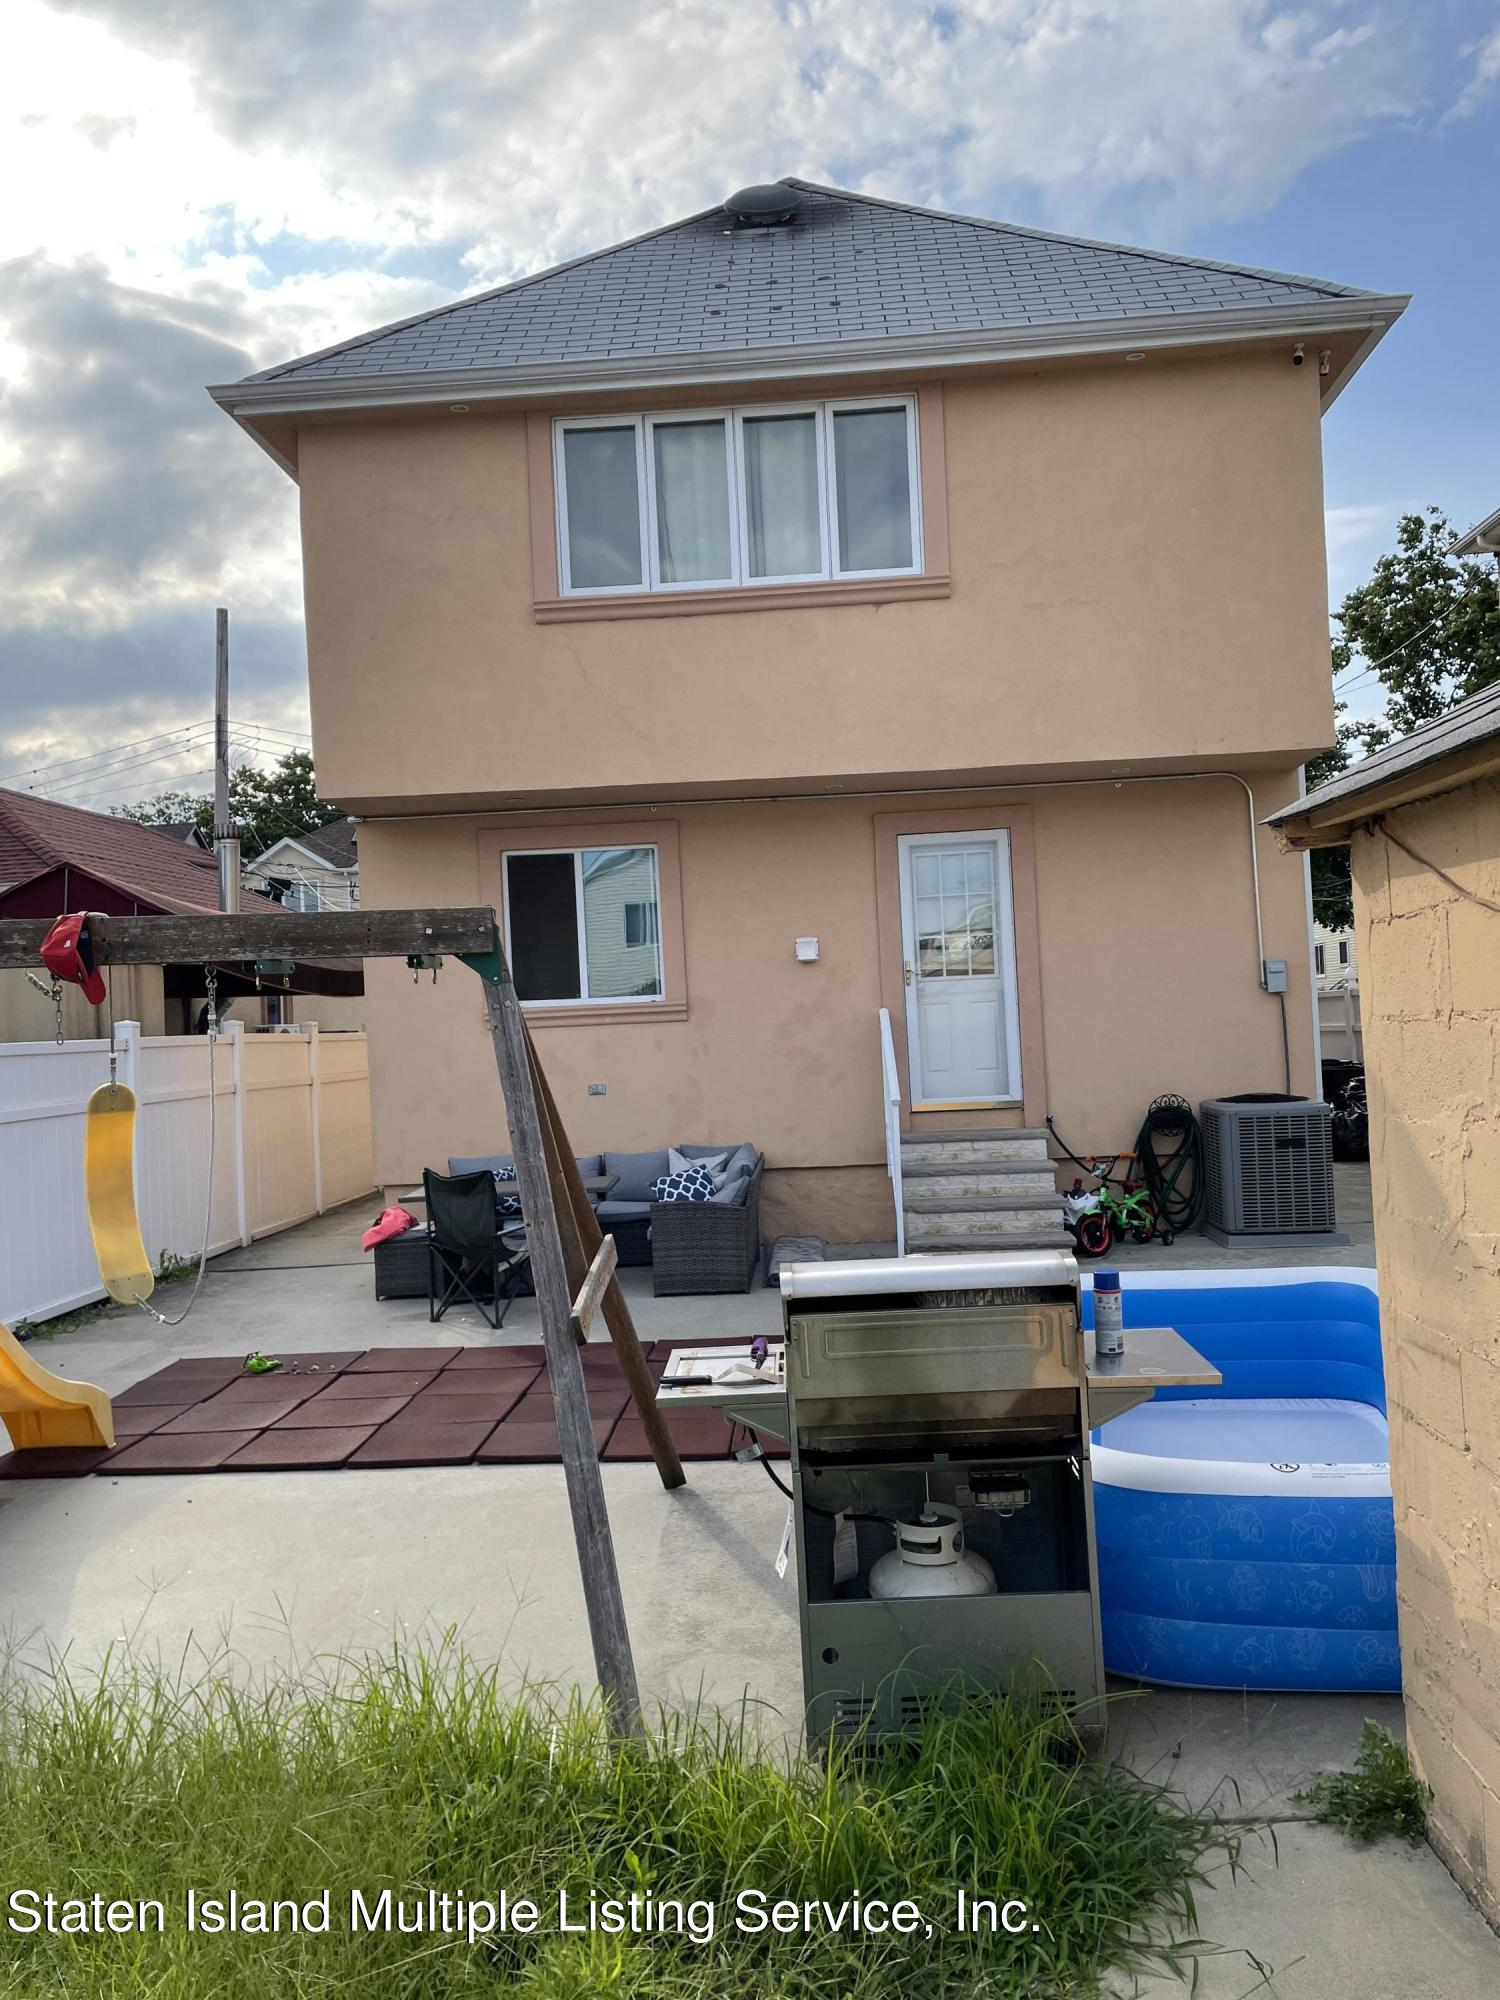 Two Family - Detached 302 Moreland St   Staten Island, NY 10305, MLS-1148258-14